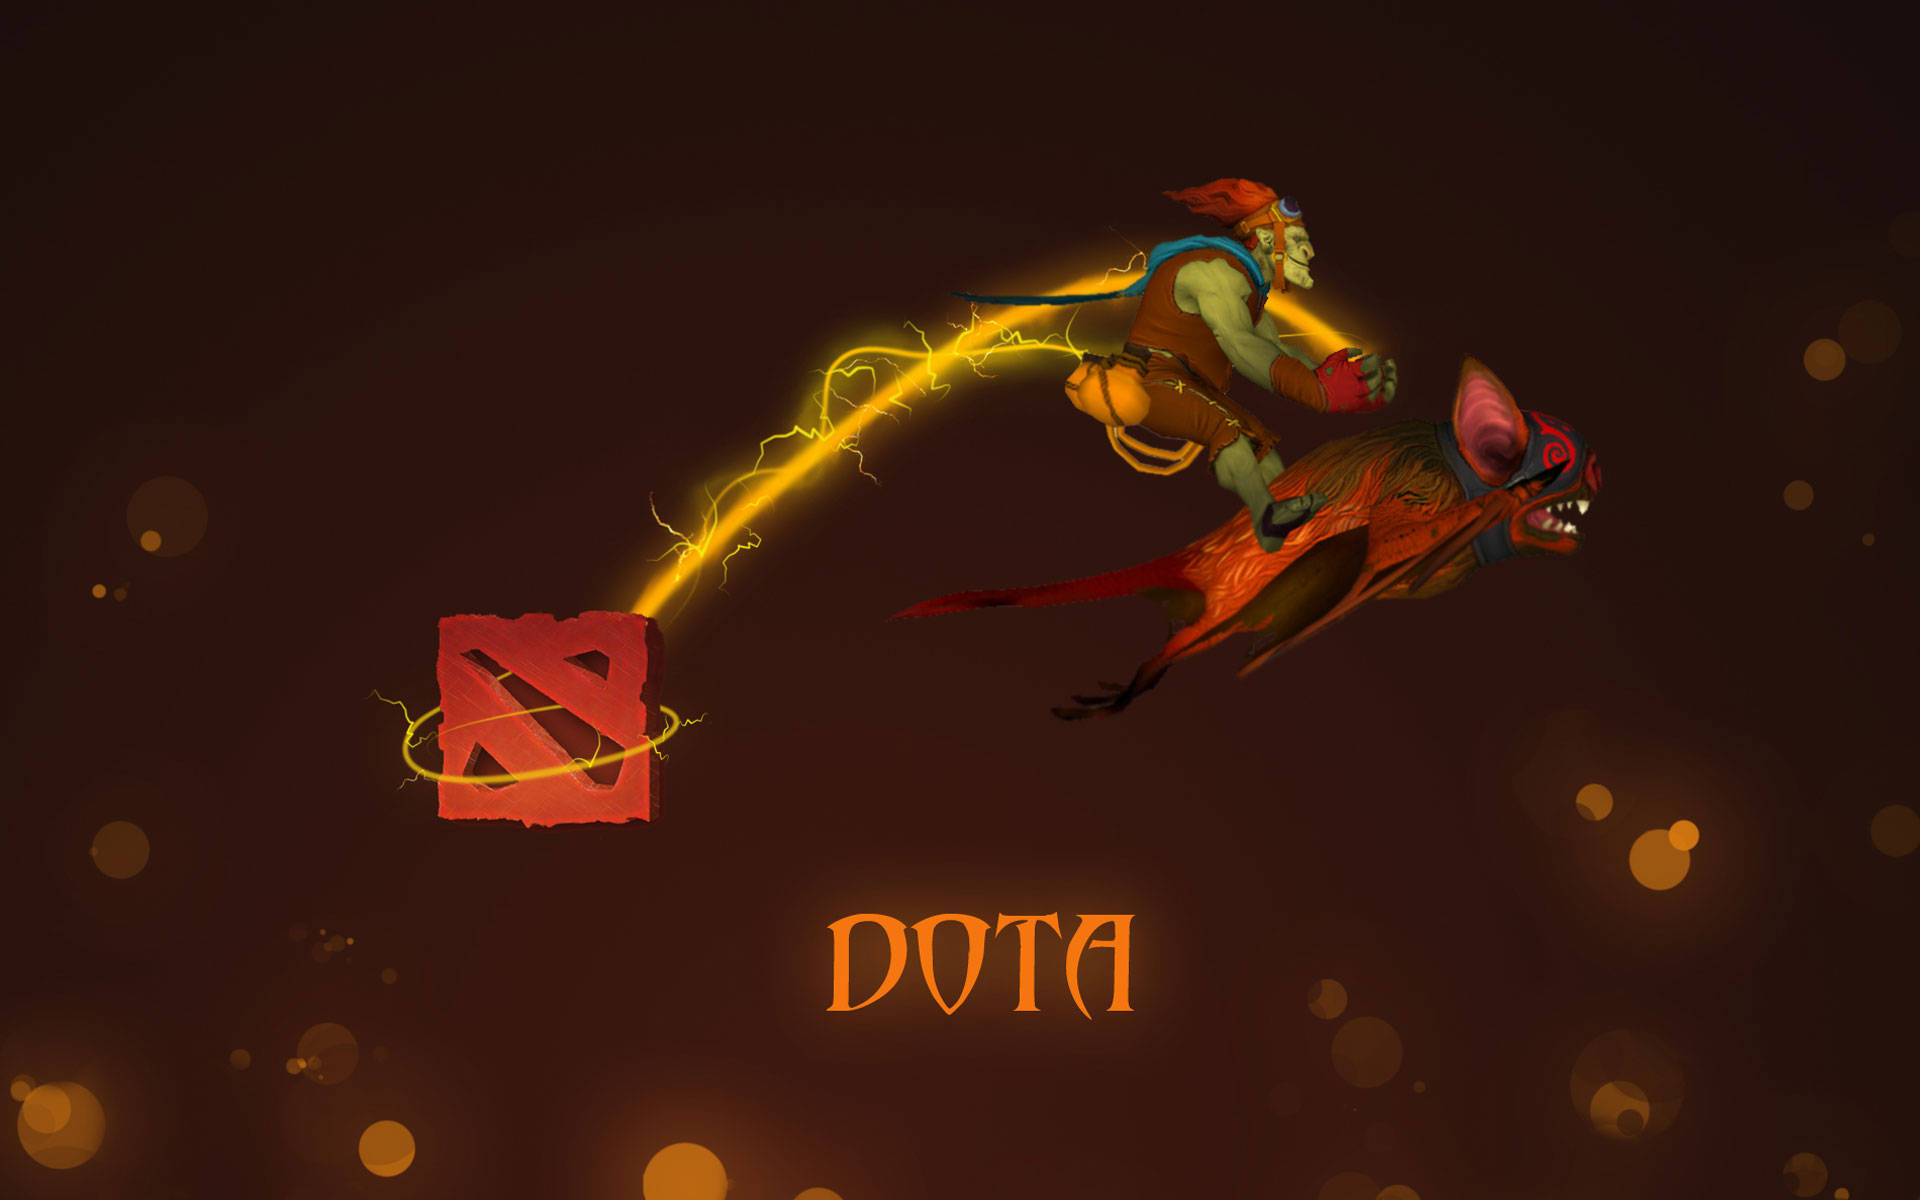 permalink dota 2 batrider wallpaper fan art wallpapers 1920x1200